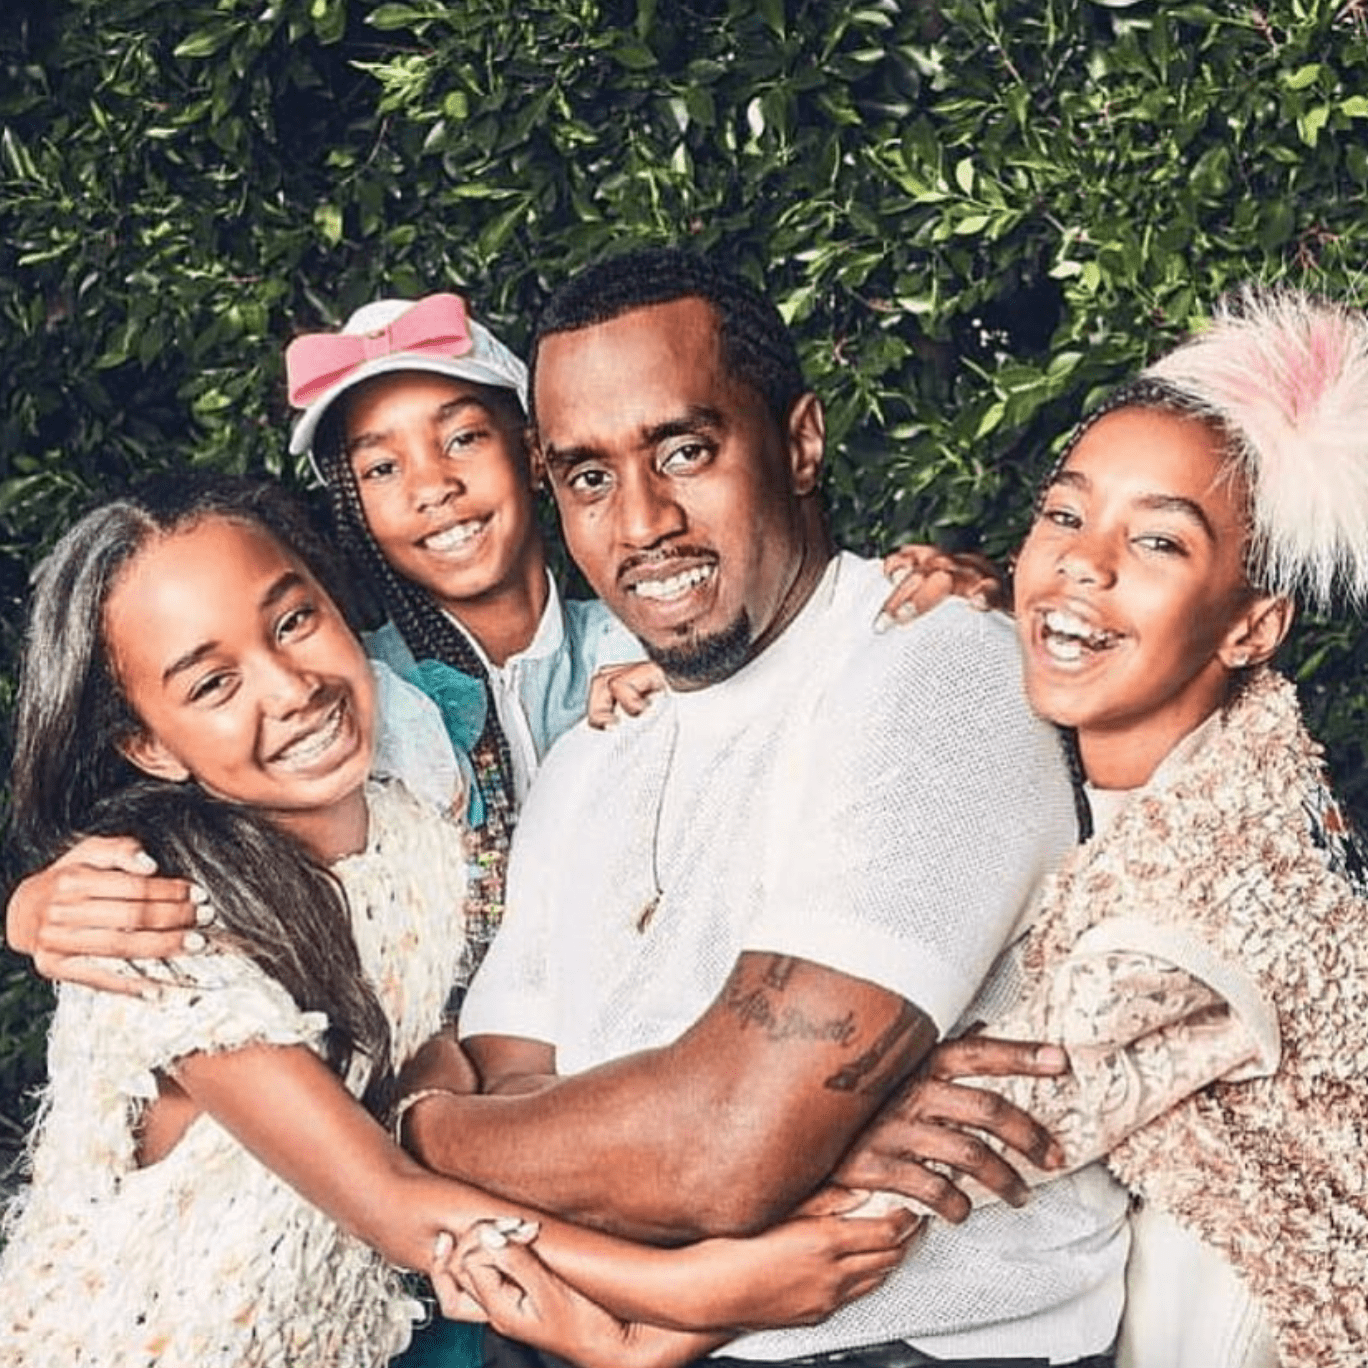 diddy-is-the-proudest-dad-he-praises-daughters-by-introducing-supergroup-the-combs-sisters-see-the-video